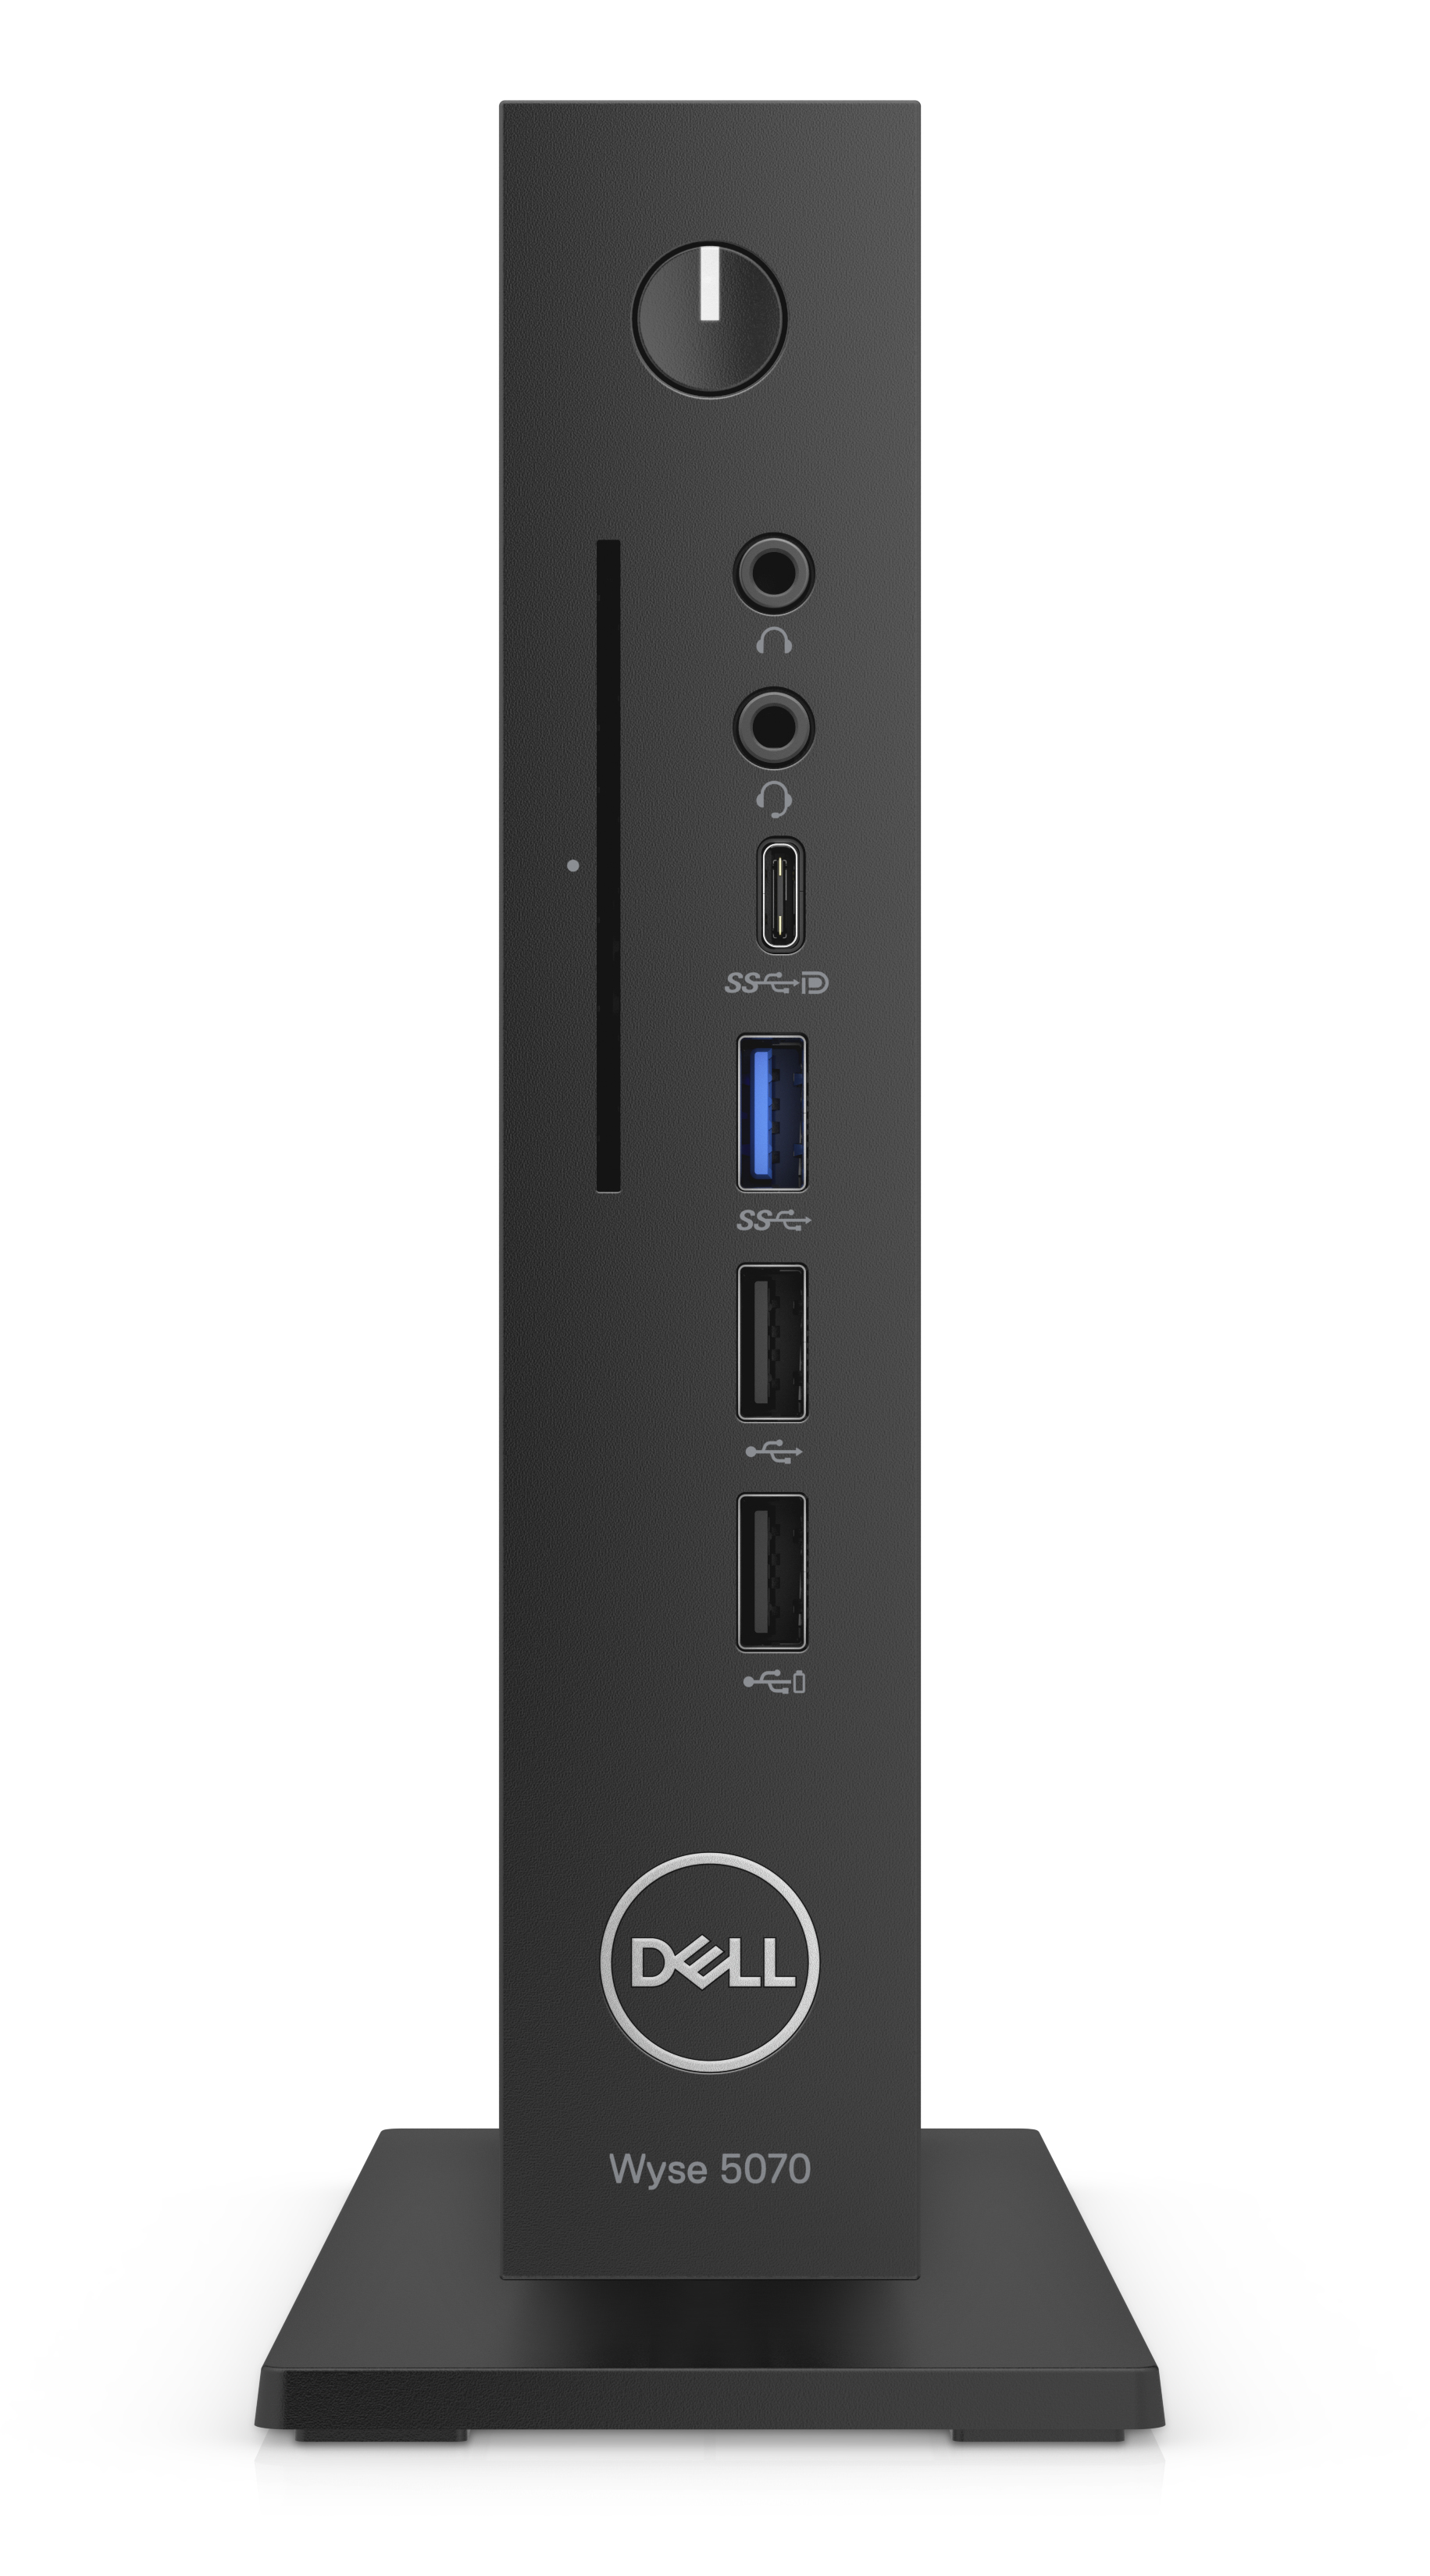 Dell Wyse 5070 TC Celeron J4105 8GB 64GB